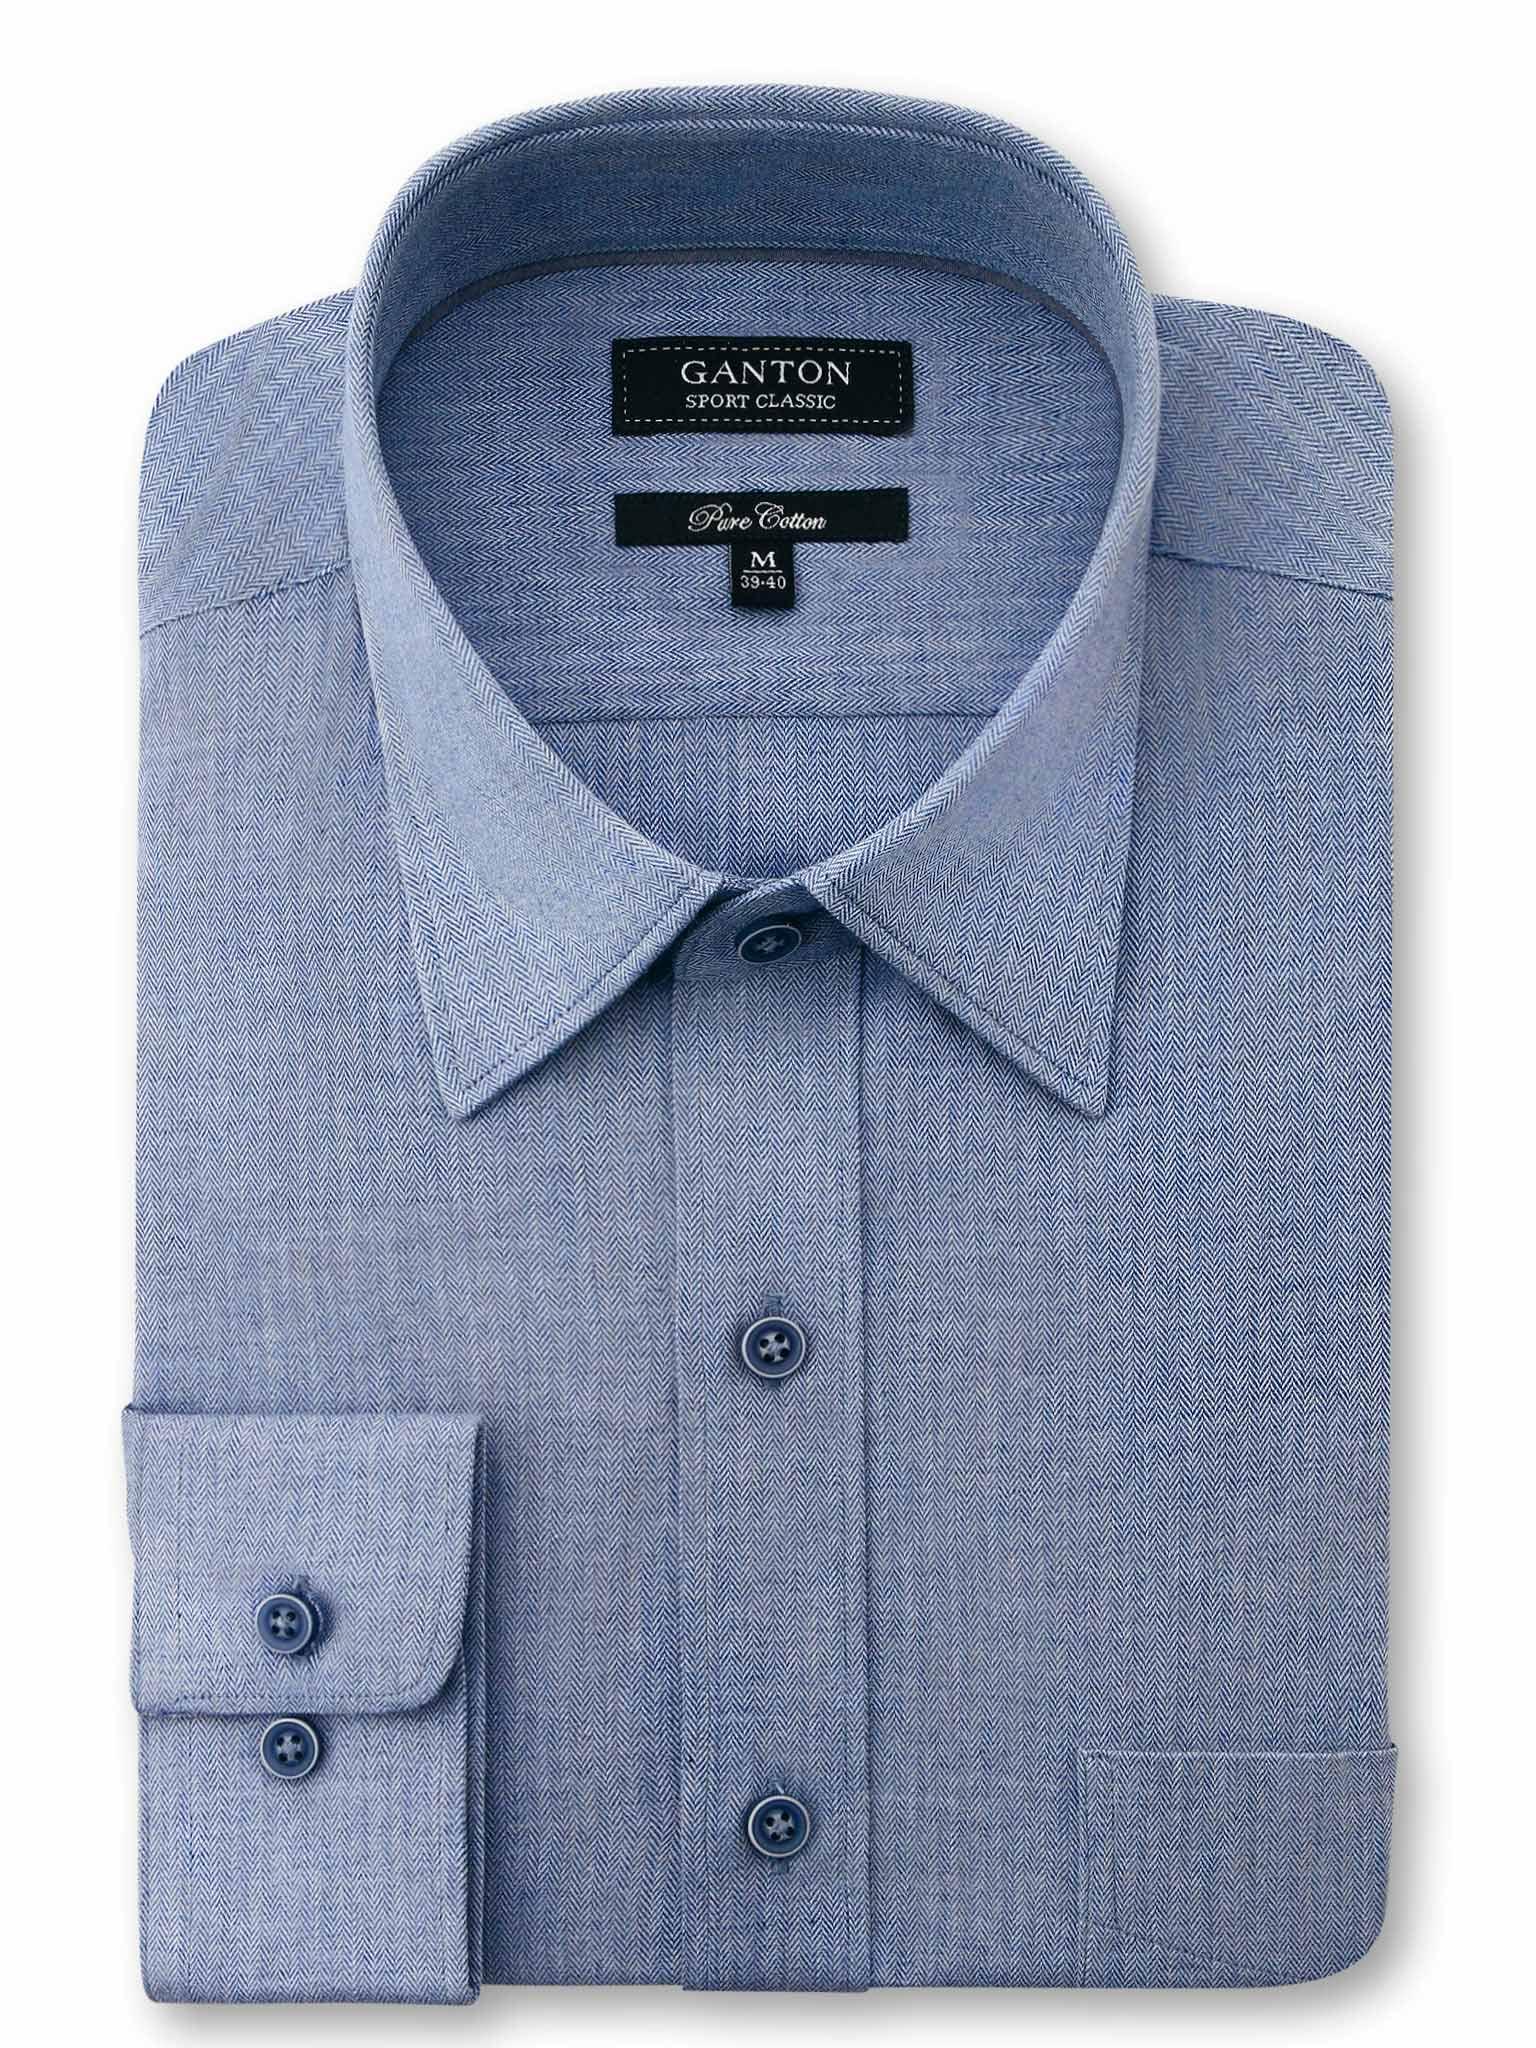 All Navy Plain Herringbone Classic Fit Bradford Cotton Shirt